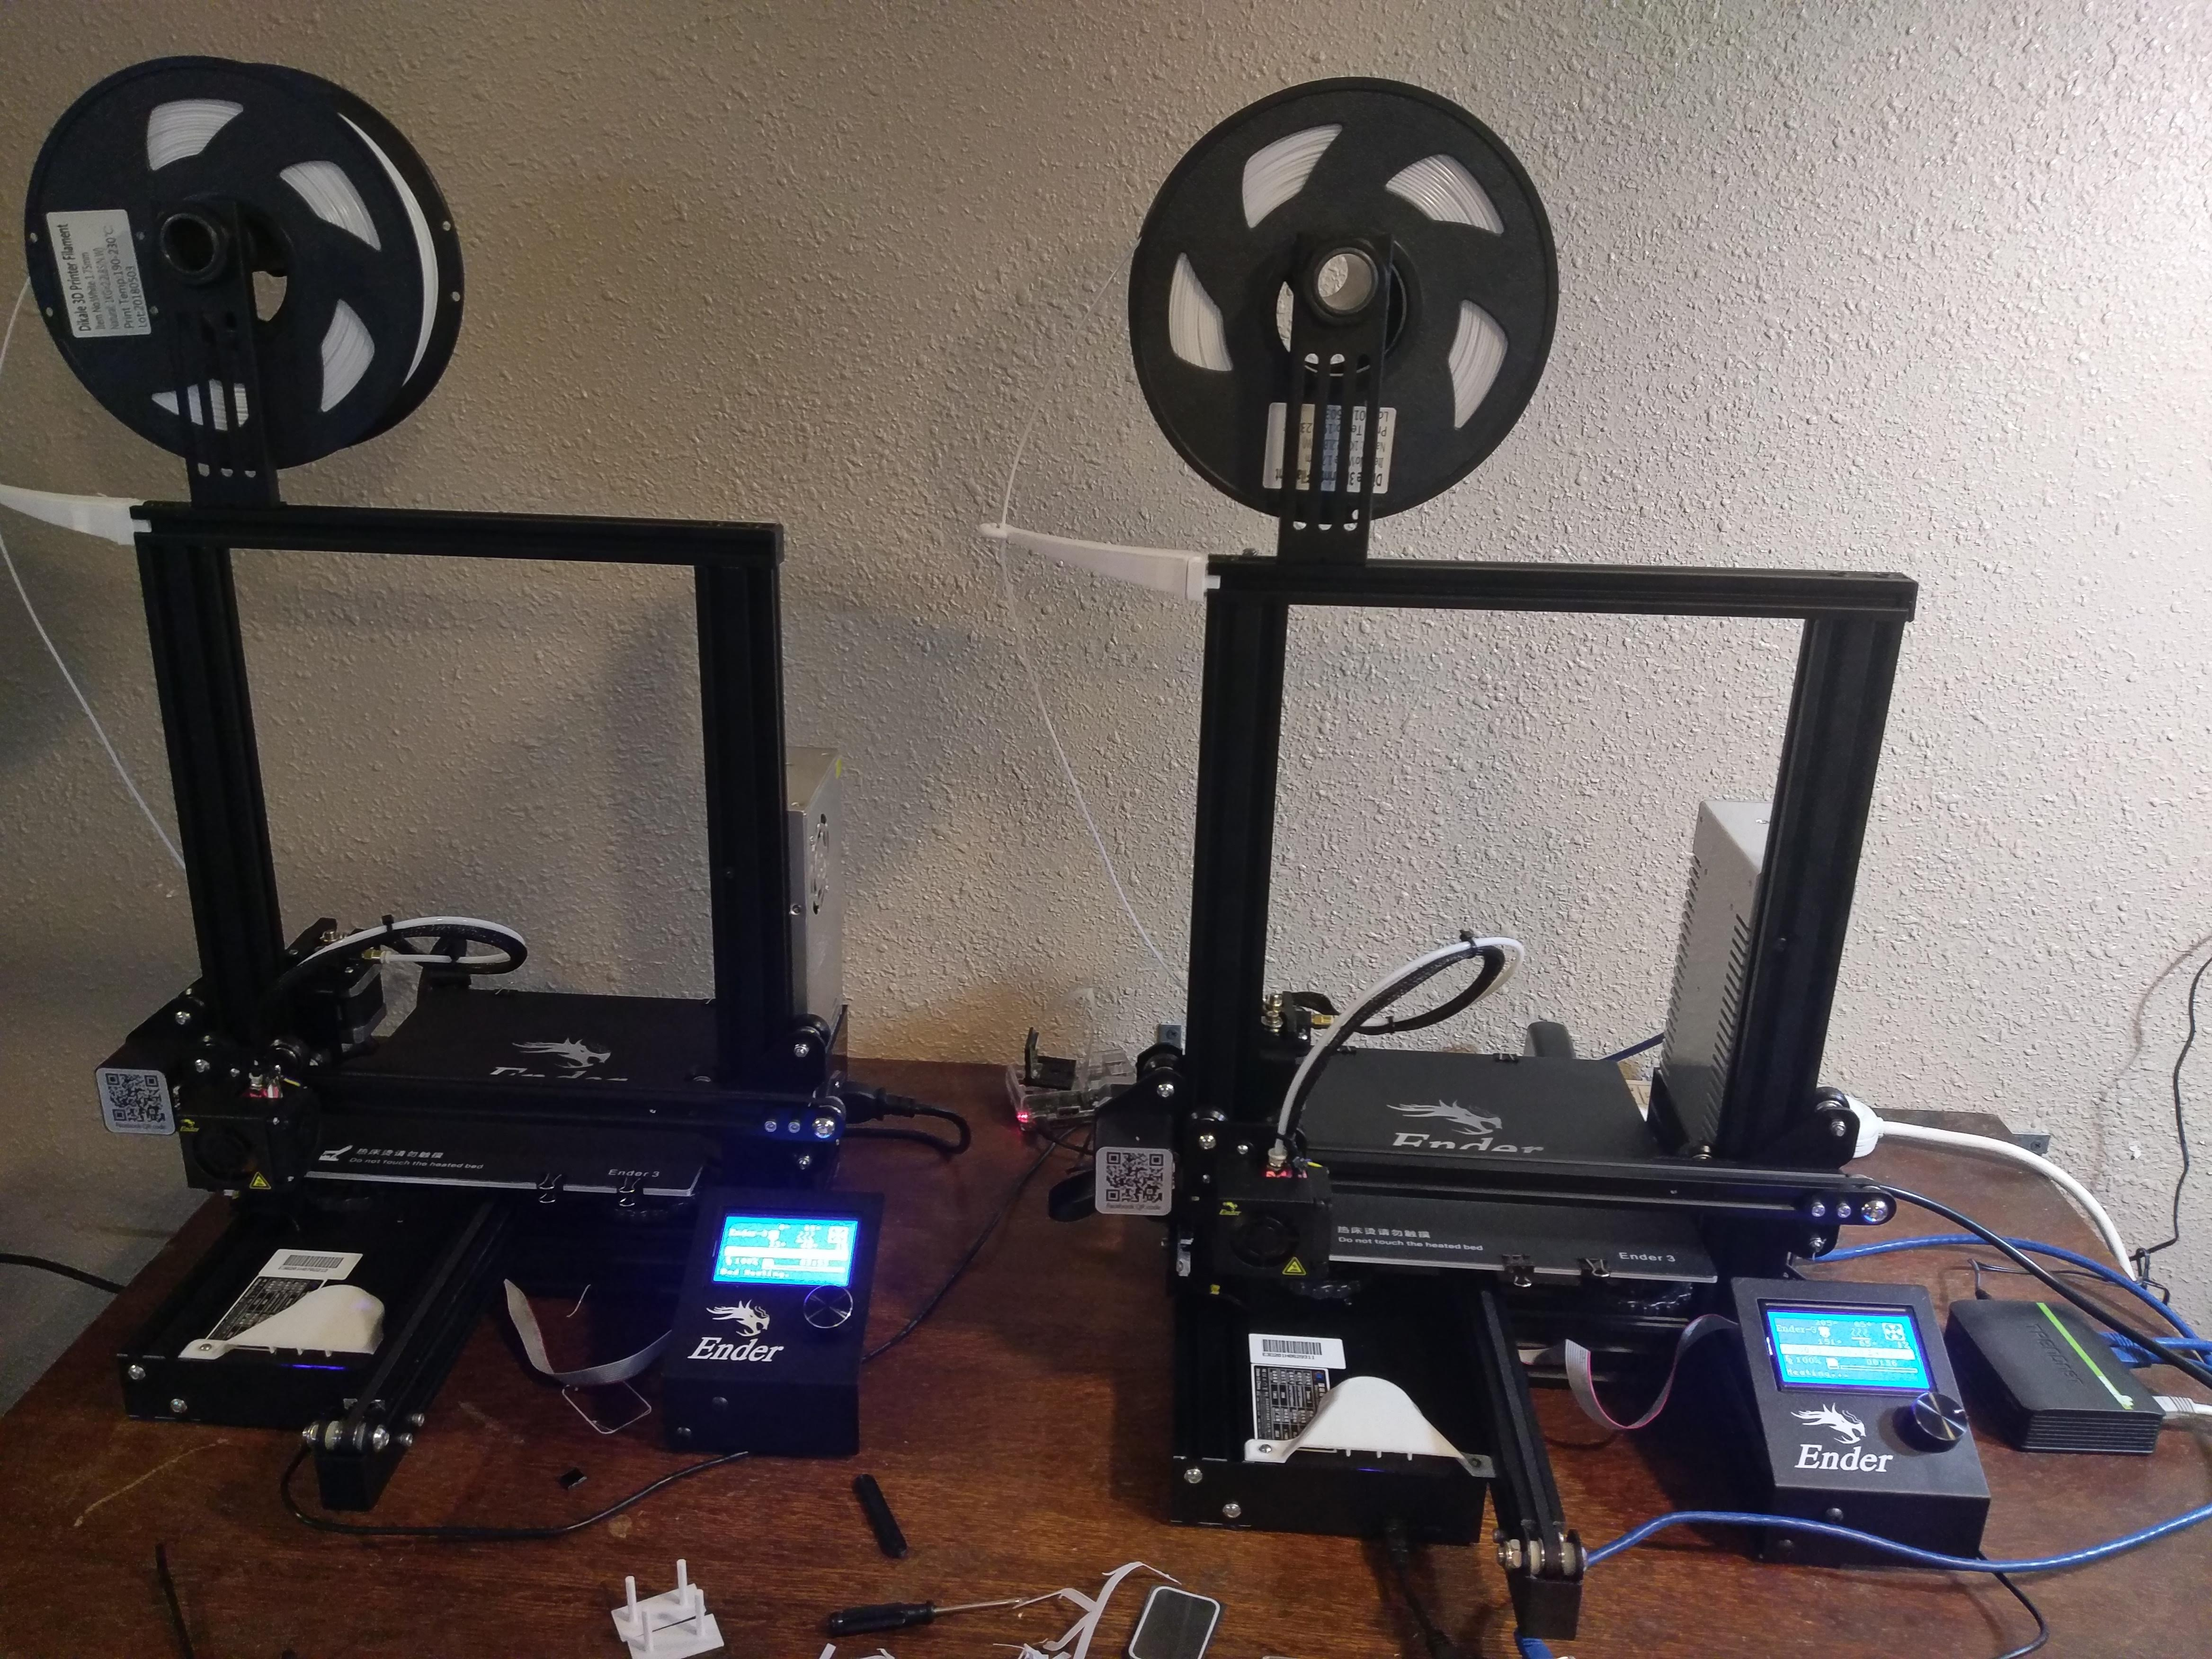 photograph relating to Ender 3 Printable Upgrades named A Story of 3 Enders: Naked Bones Updates for the Ender 3